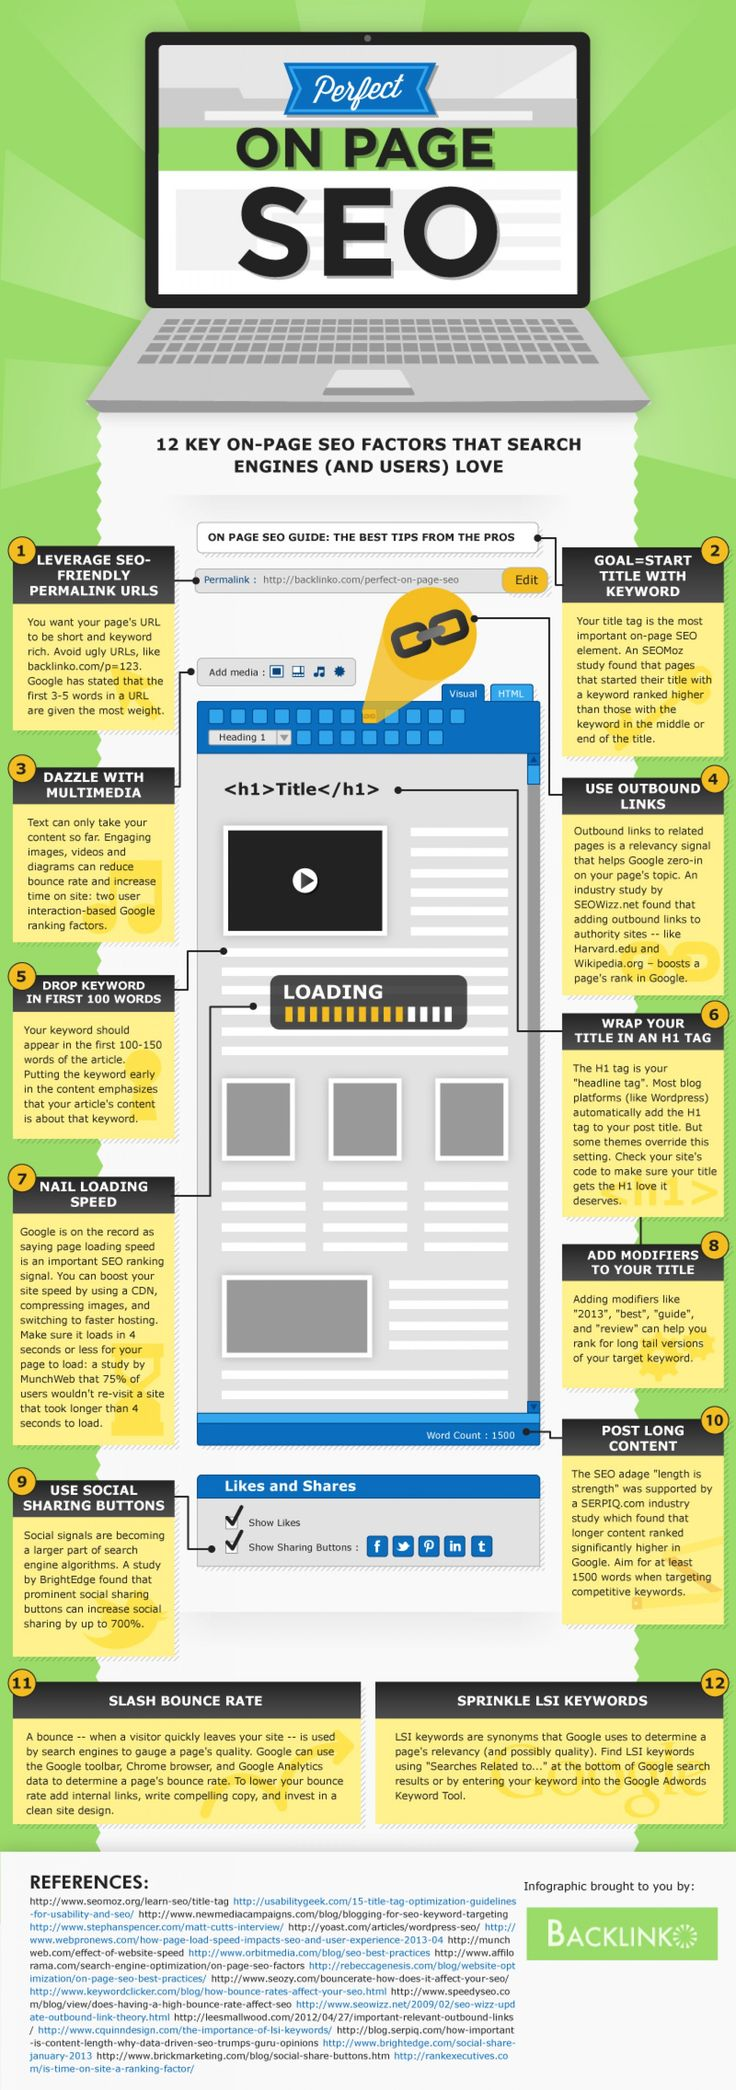 Perfect On-Page SEO Infographic By www.twitter.com/RiddsNetwork